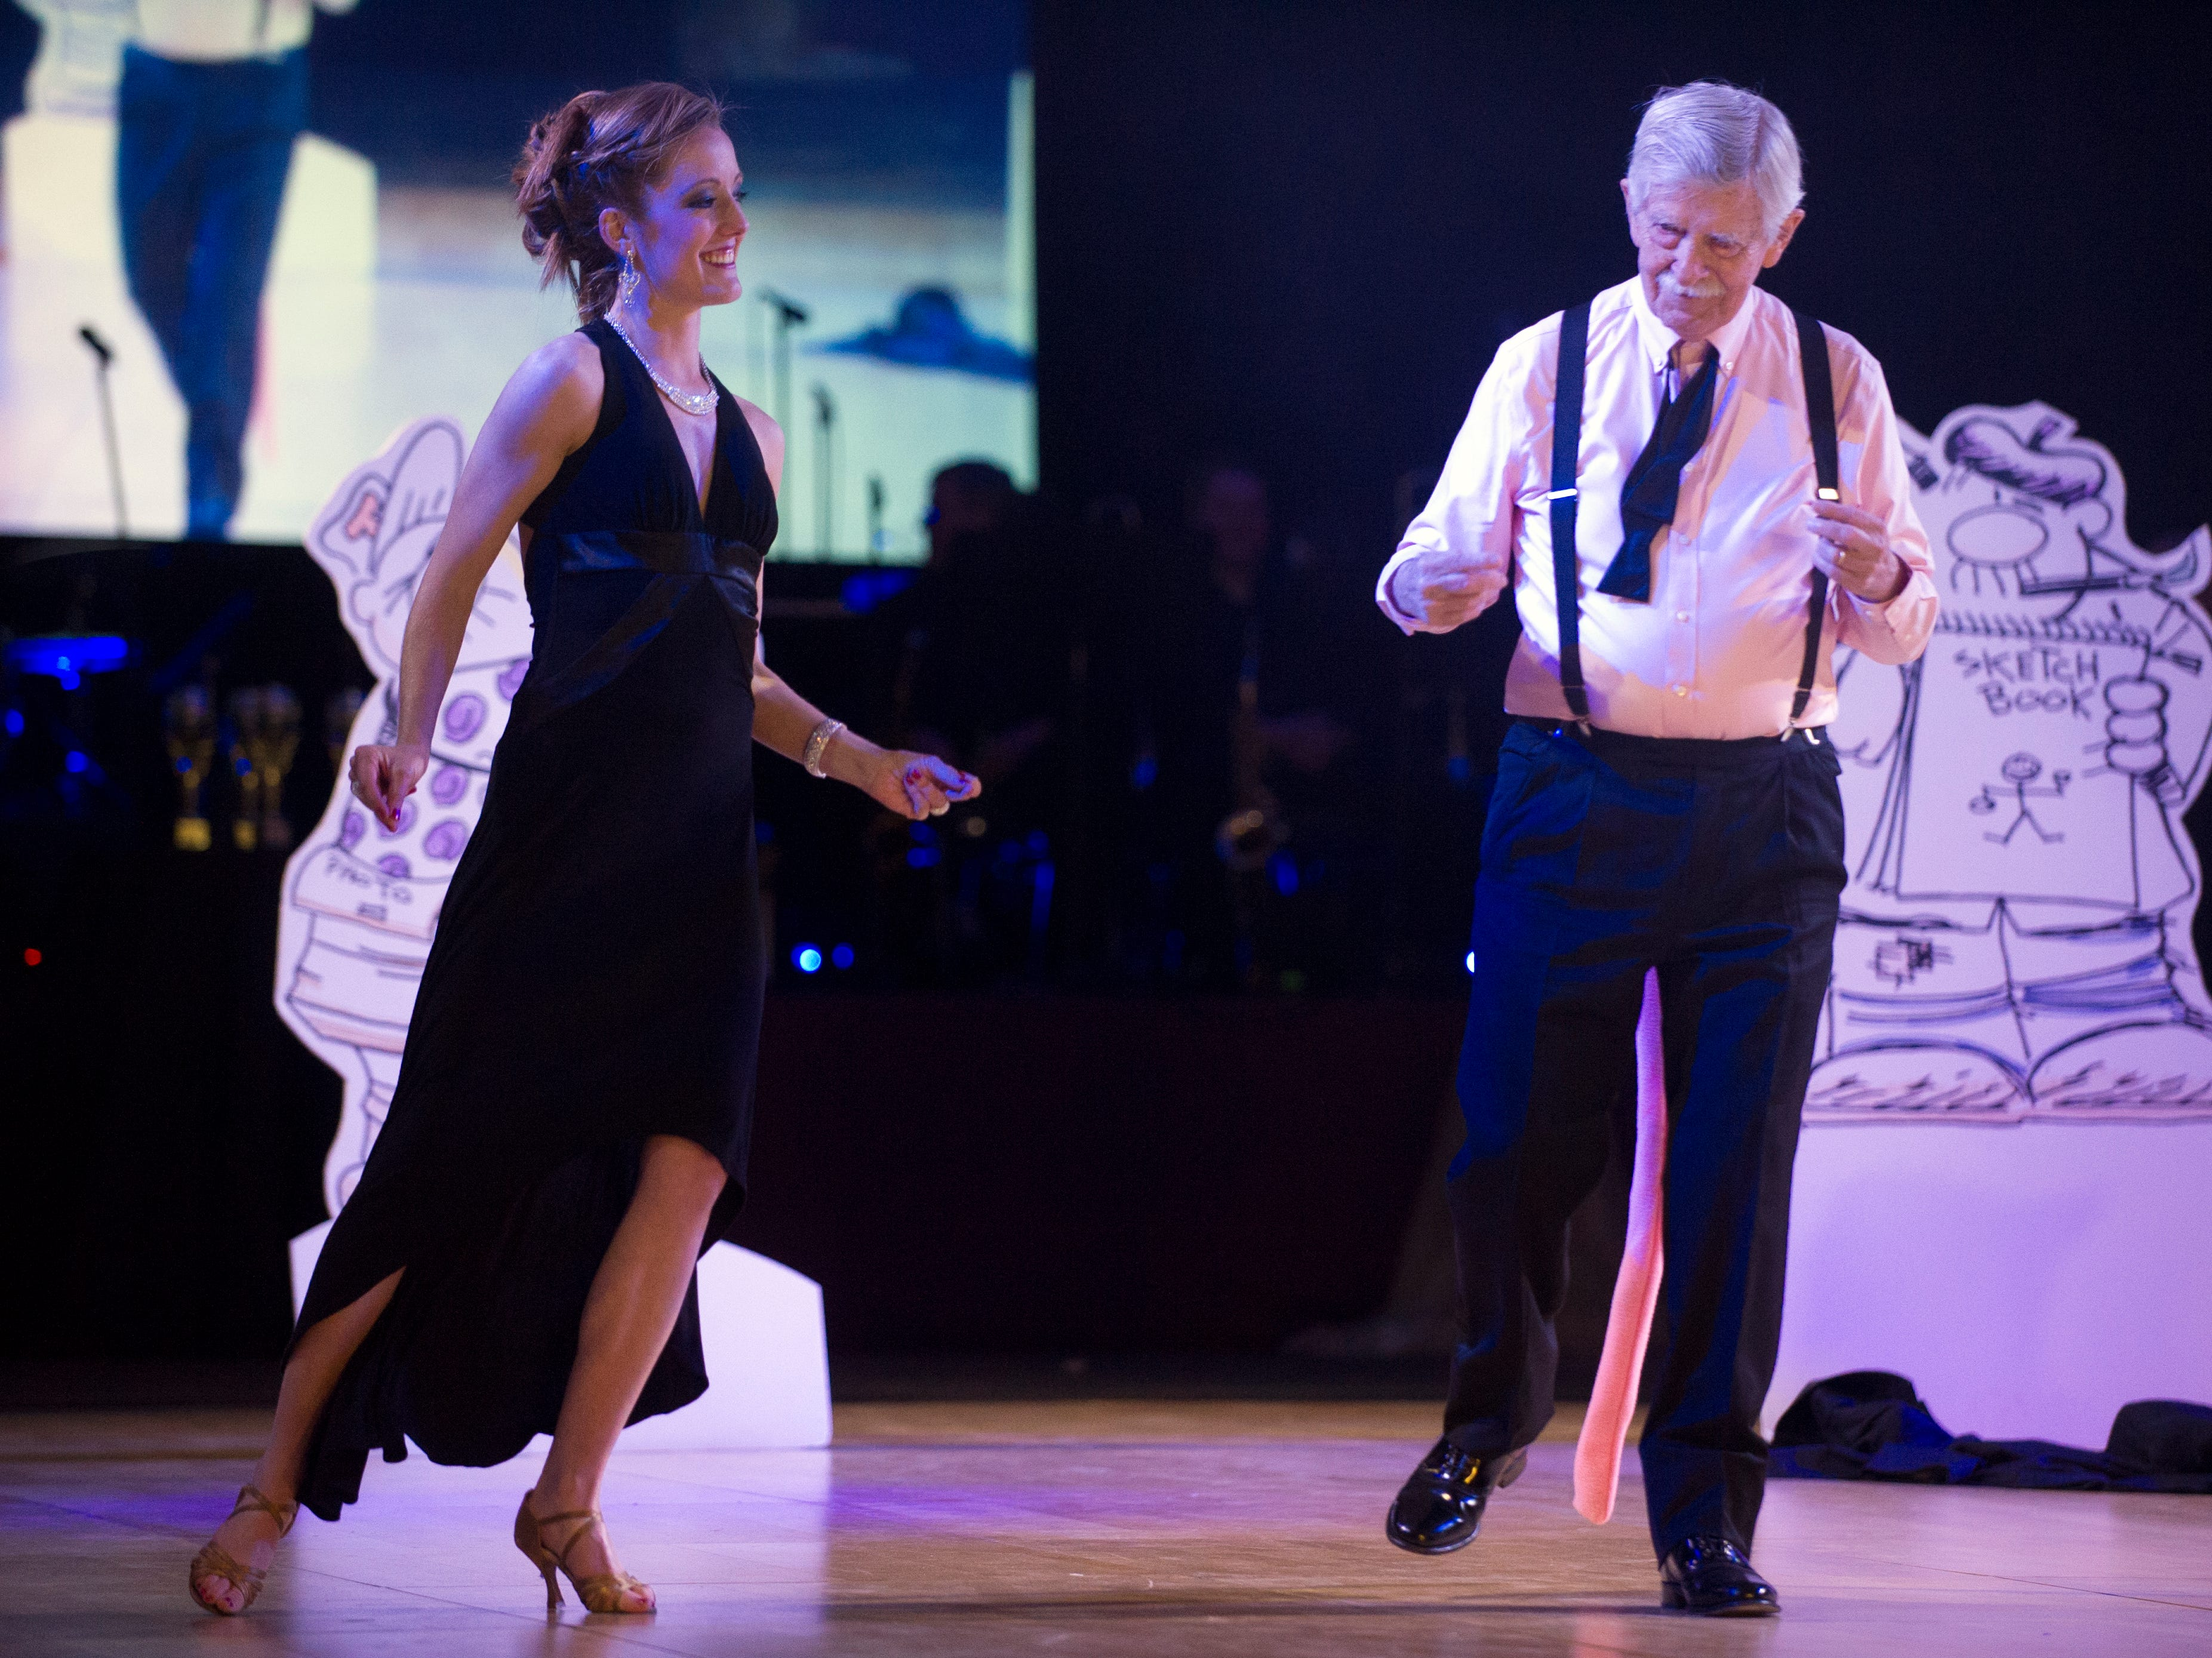 Knoxville News Sentinel cartoonist Charlie Daniel, right, dances with Stephanie Braeuner during Dancing with the Knoxville Stars at the Knoxville Expo Center Friday, March 22, 2013.